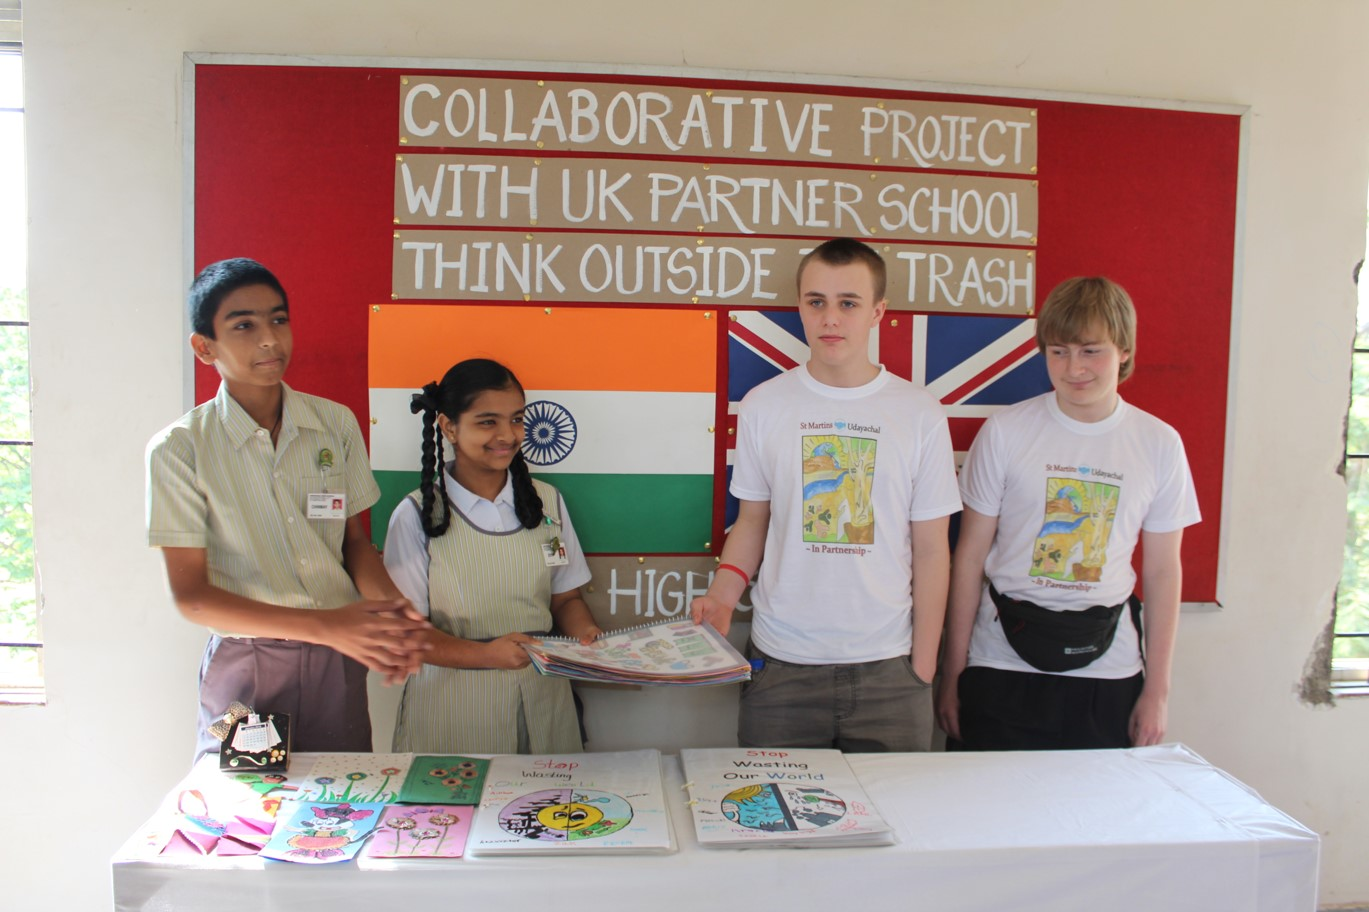 Pupils from St Martins' School in Alvaston, Derby visited India as part of an inspirational trip: Penguin PR - public relations, media and communications